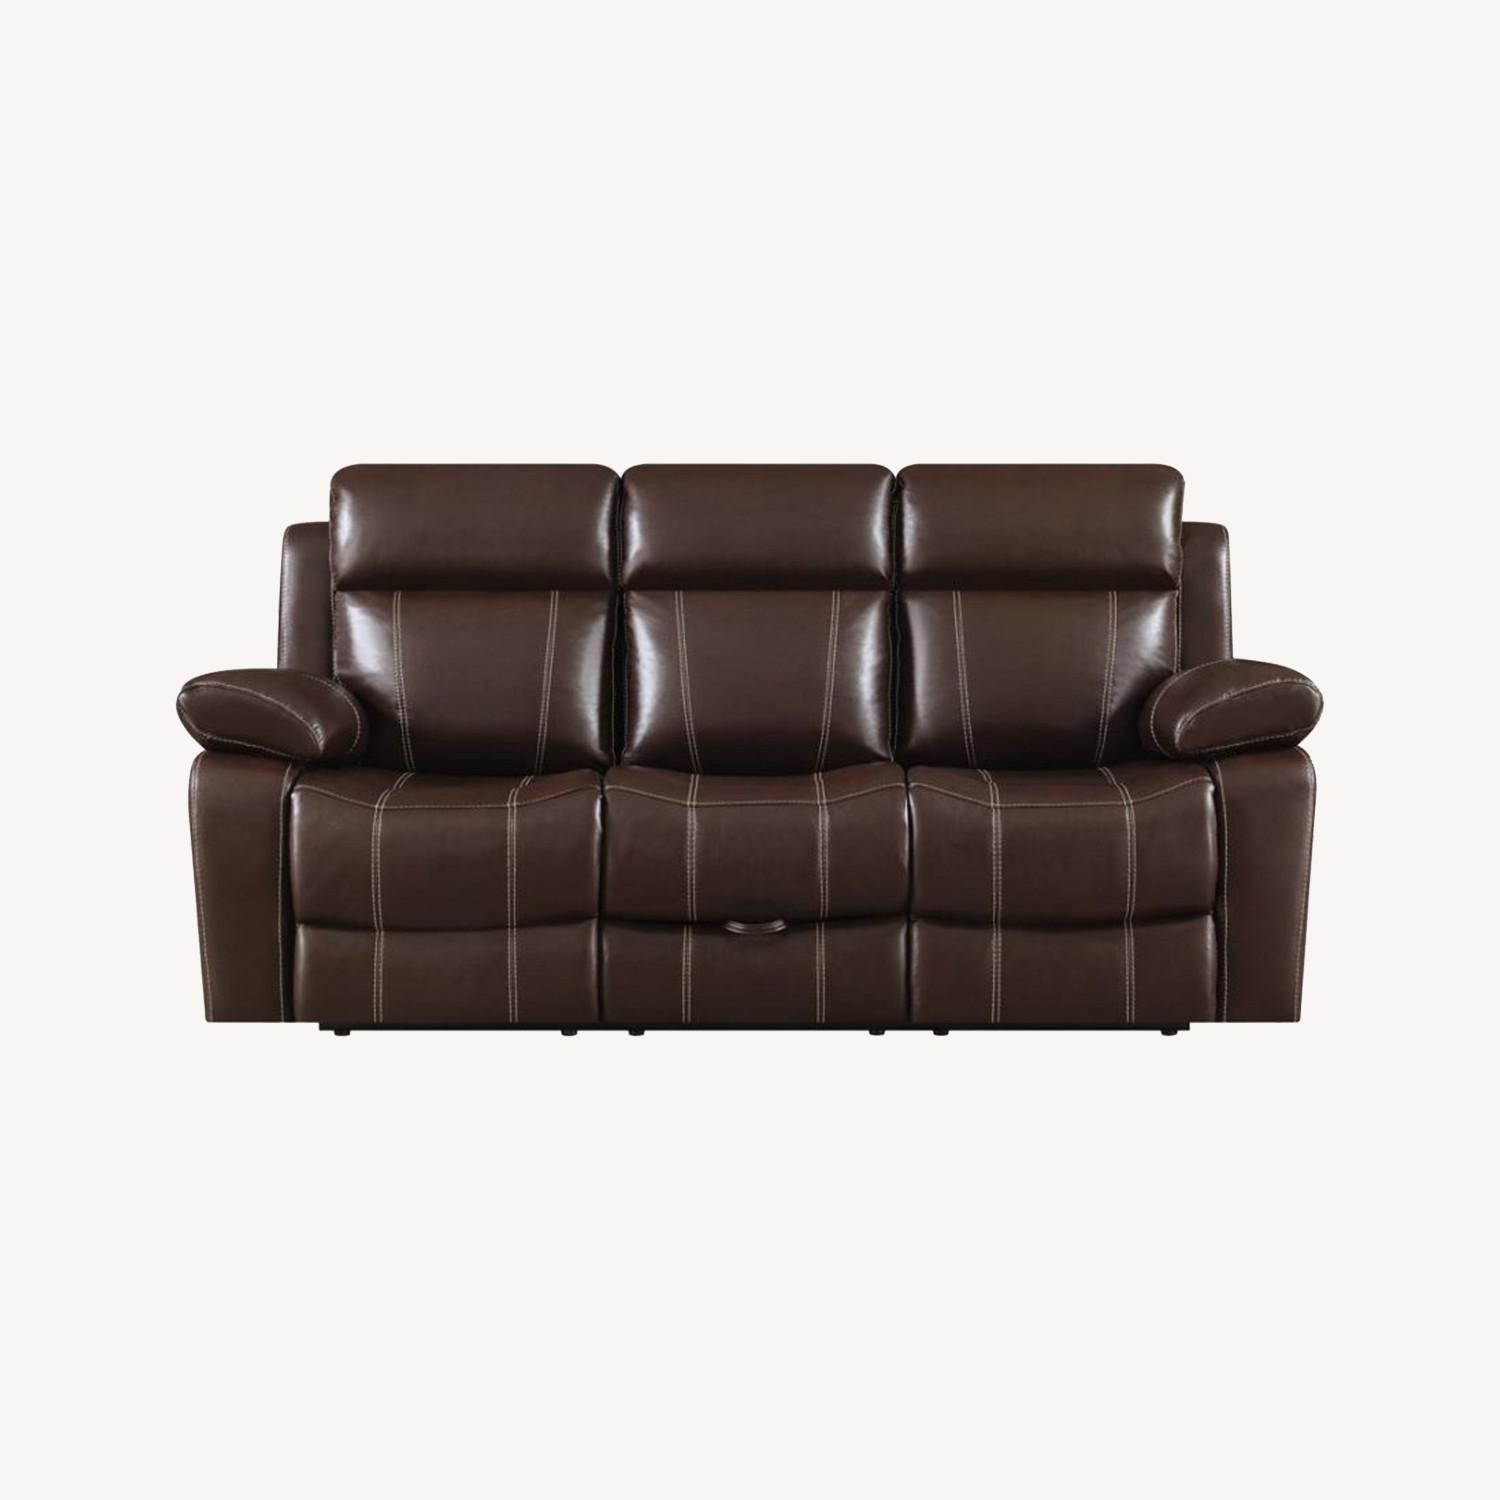 Motion Sofa In Chestnut Leather W/ Storage Drawer - image-8